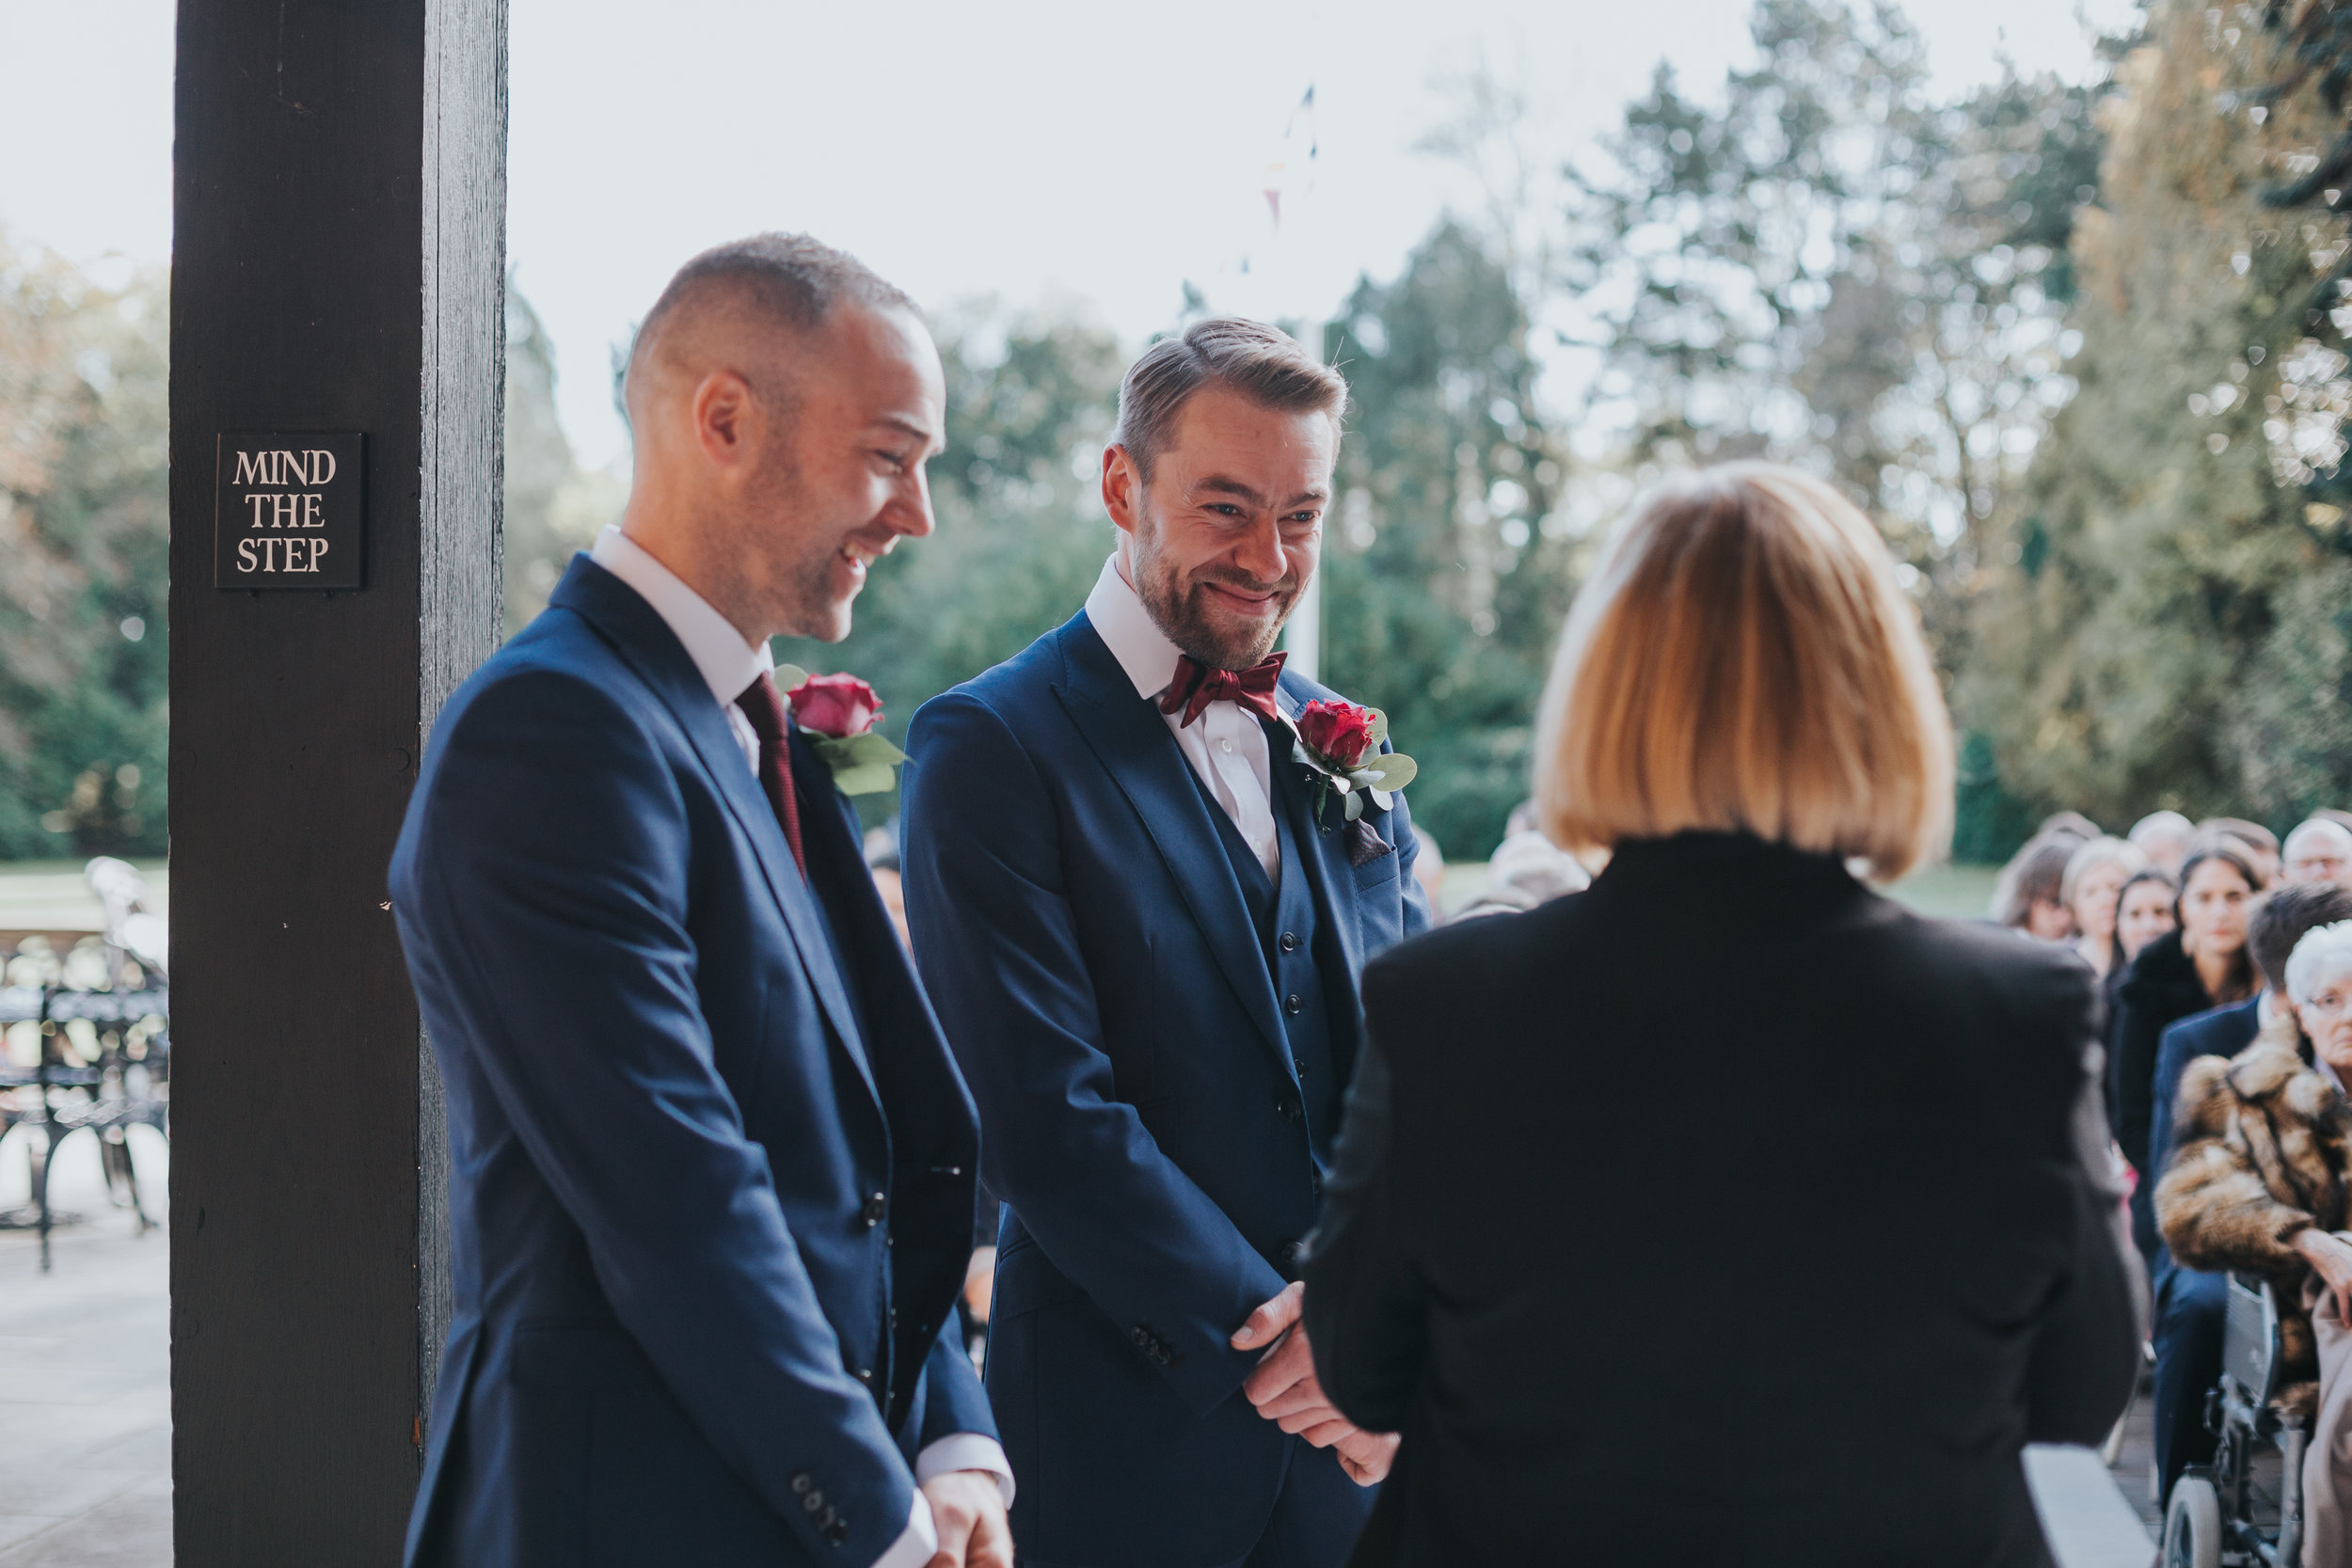 The groom, best man and registrar share a joke.